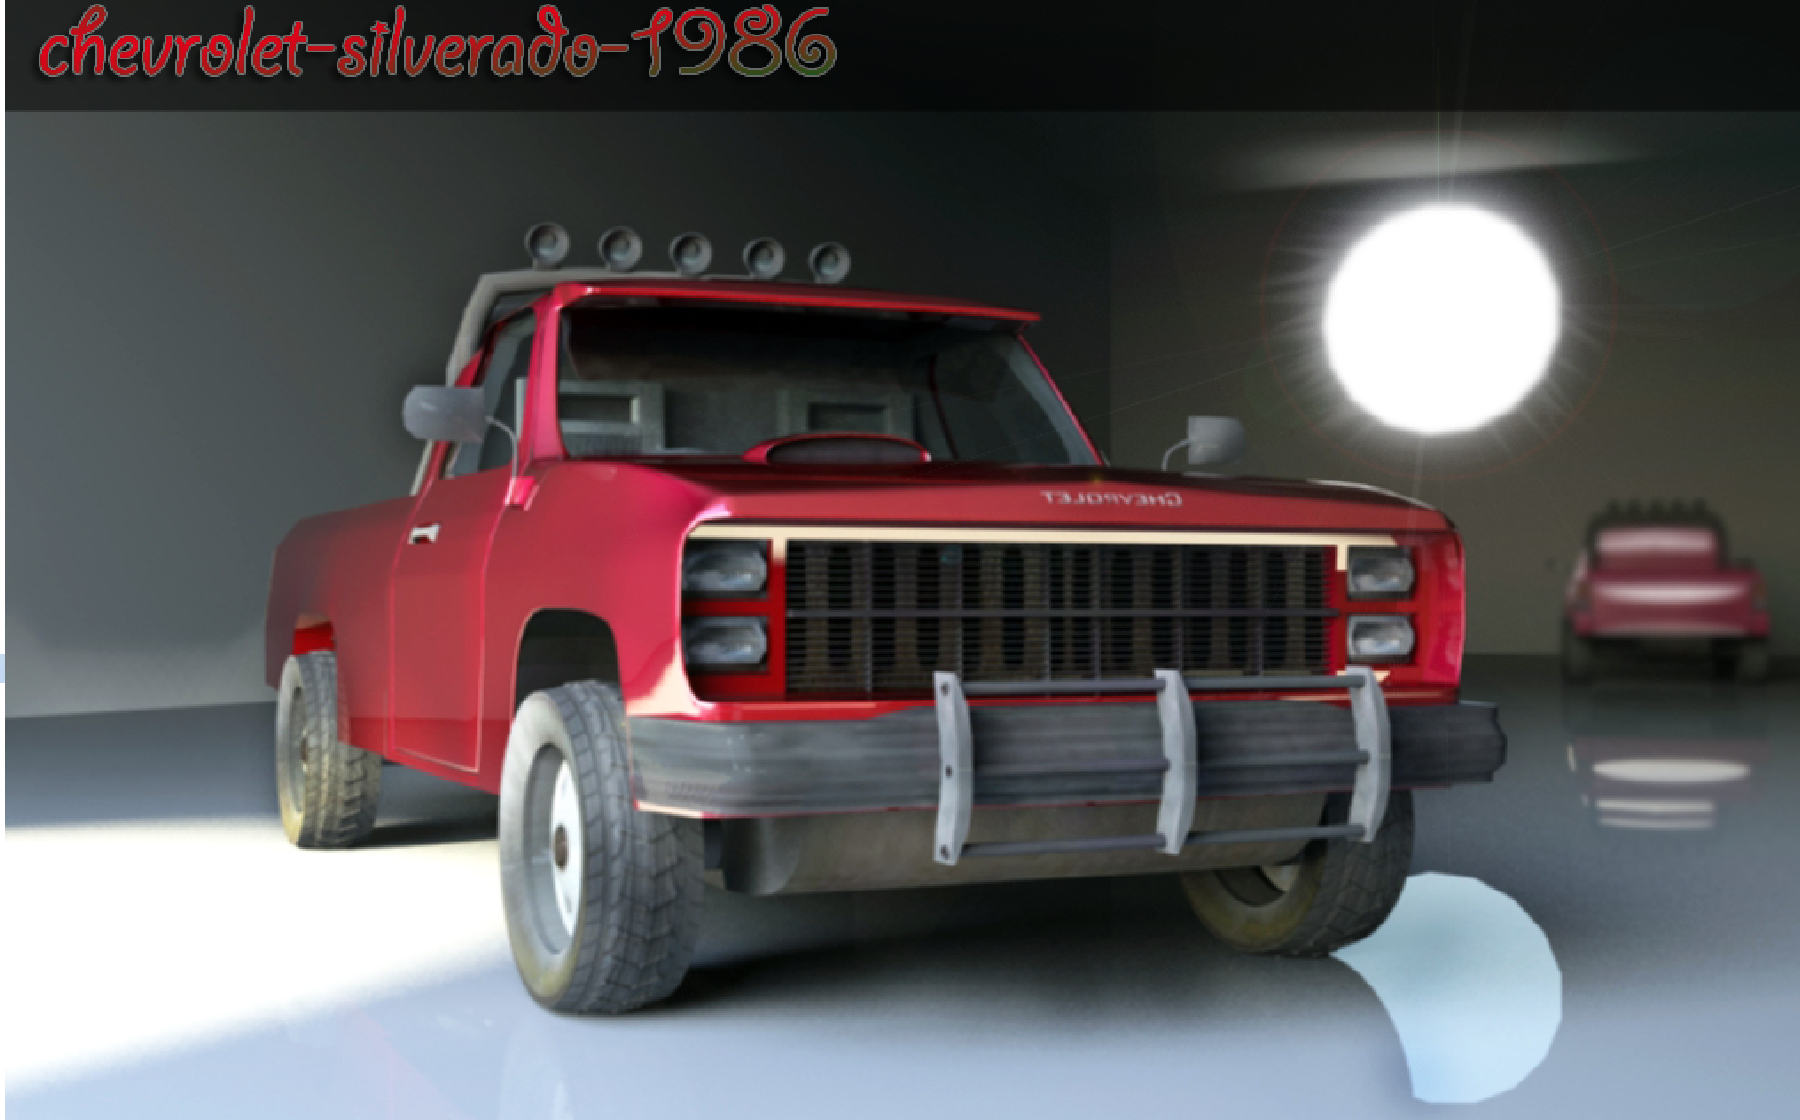 chevrolet-silverado-1986 in Blender cycles render image